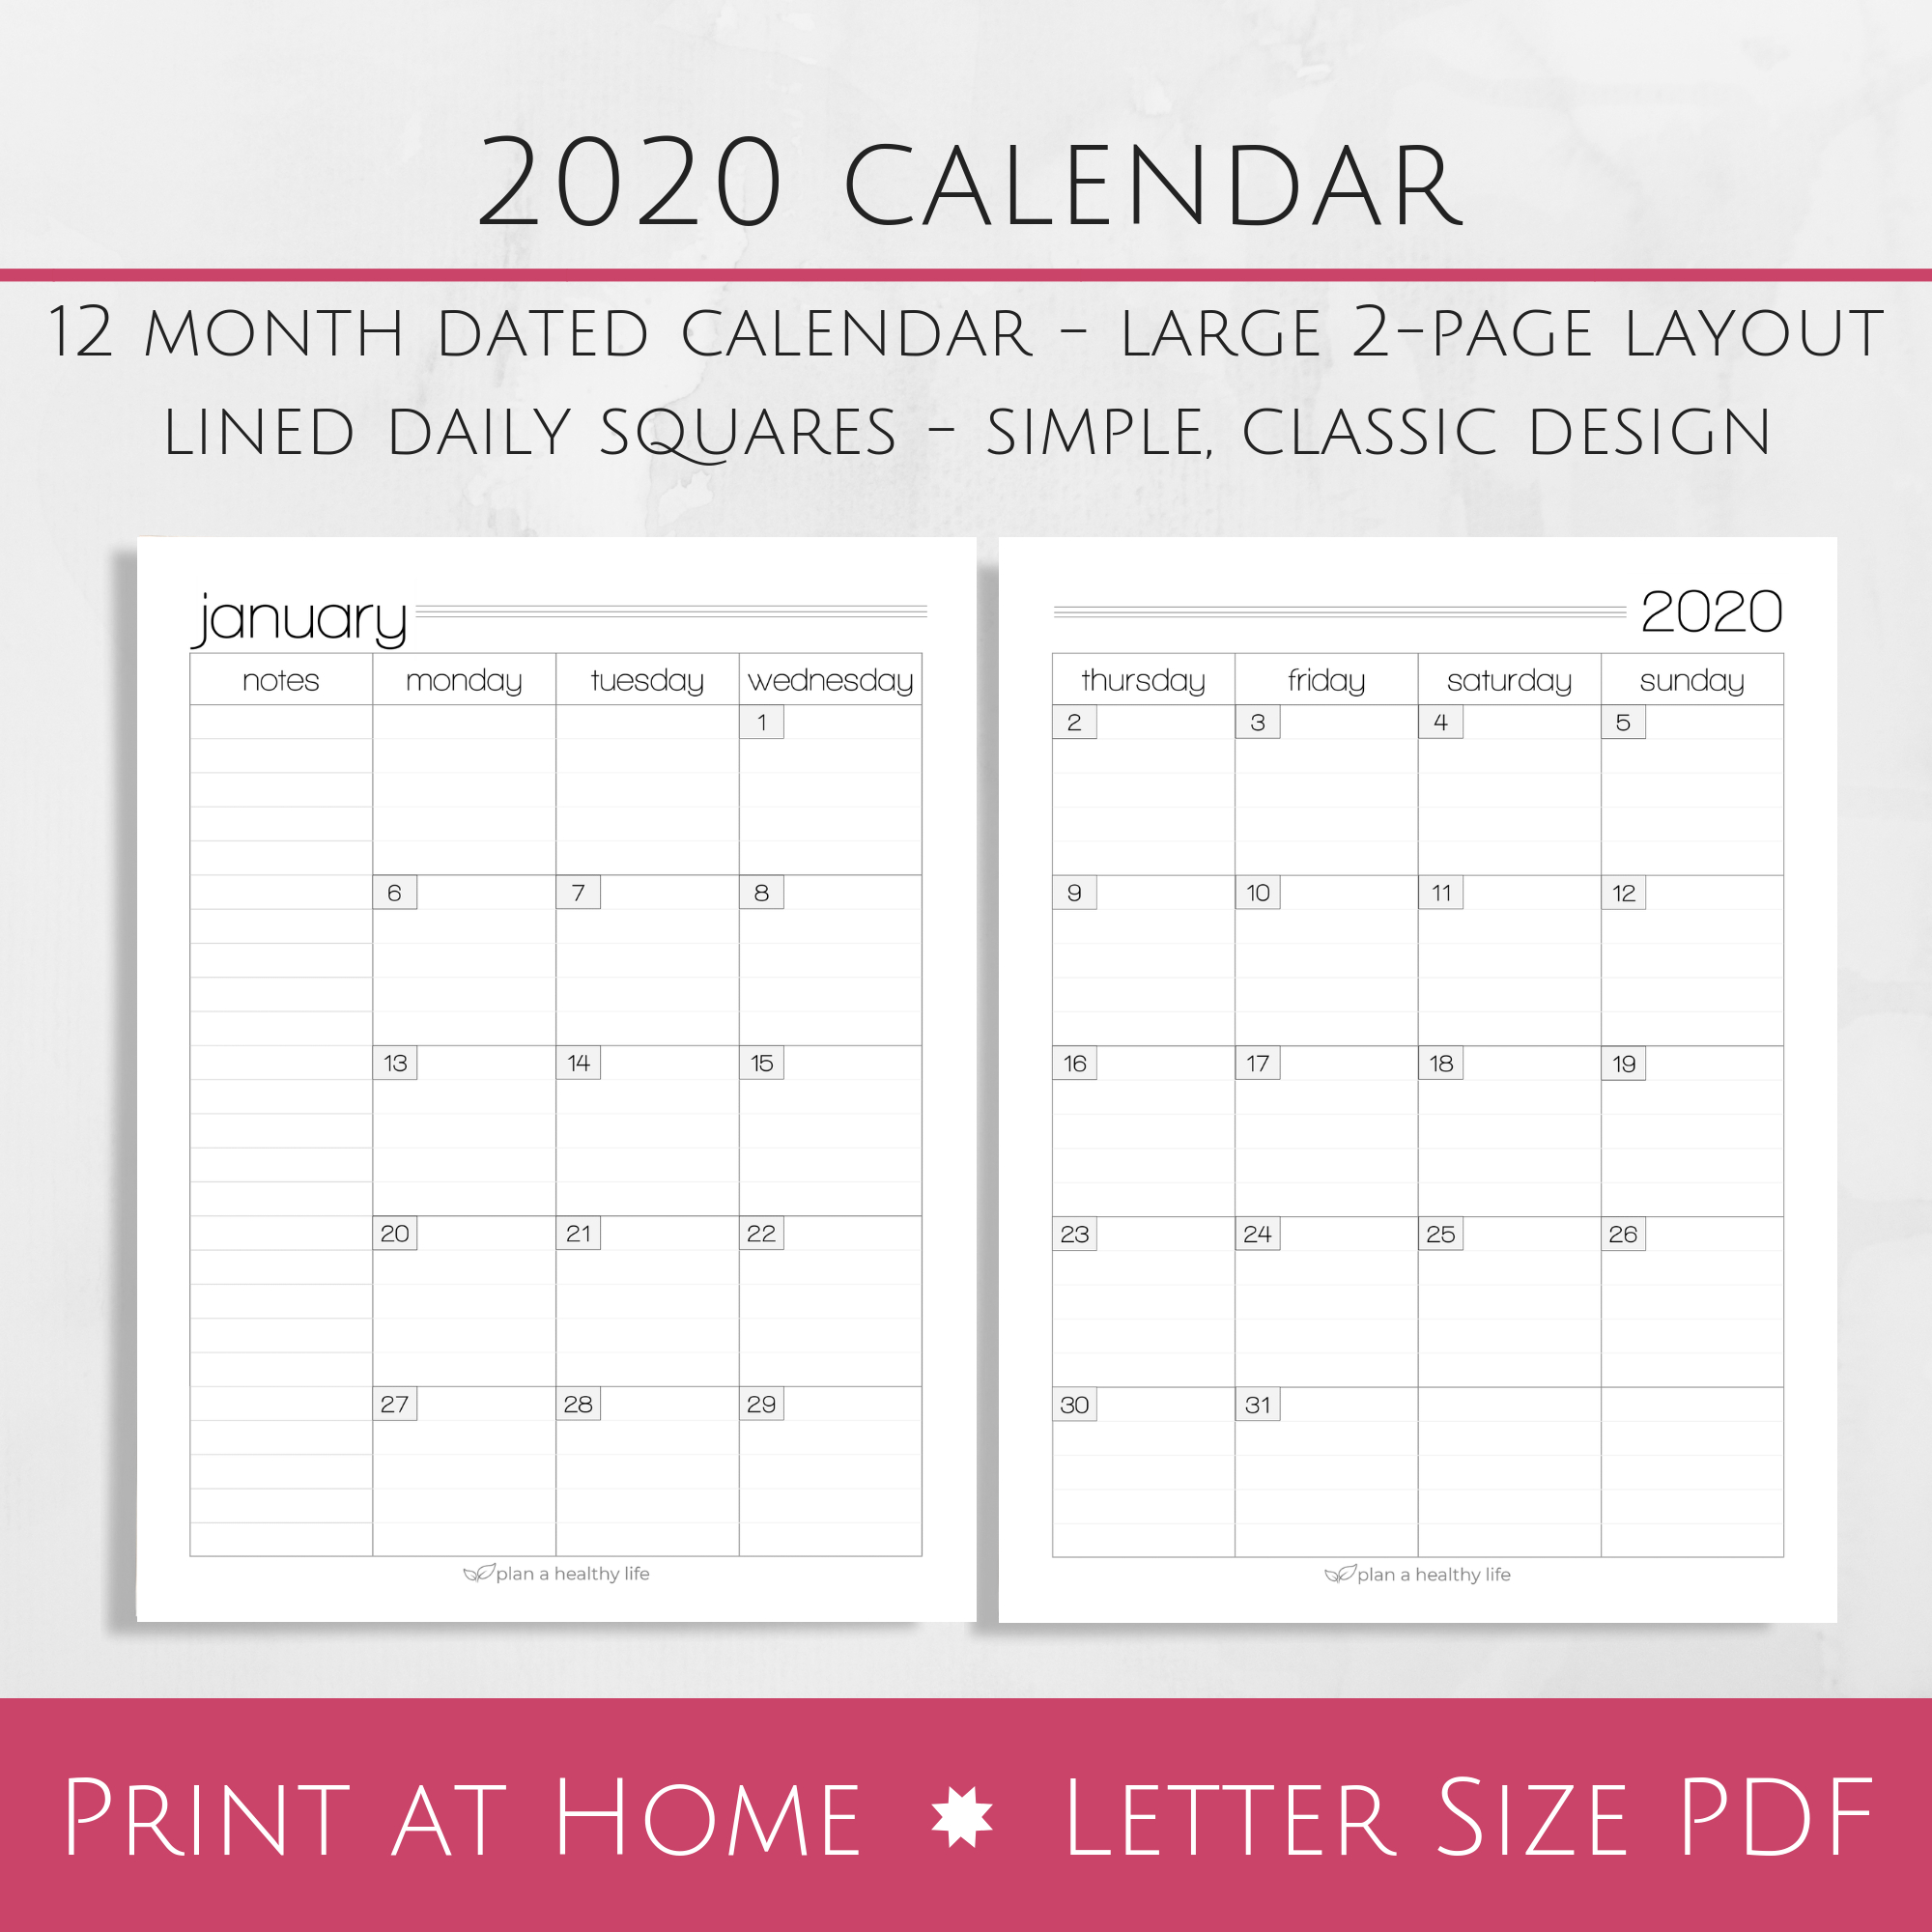 Printable 2020 Monthly Calendar - Large 2-Page Layout — Plan A Healthy Life inside 2020 Printable Calendar With Large Squares